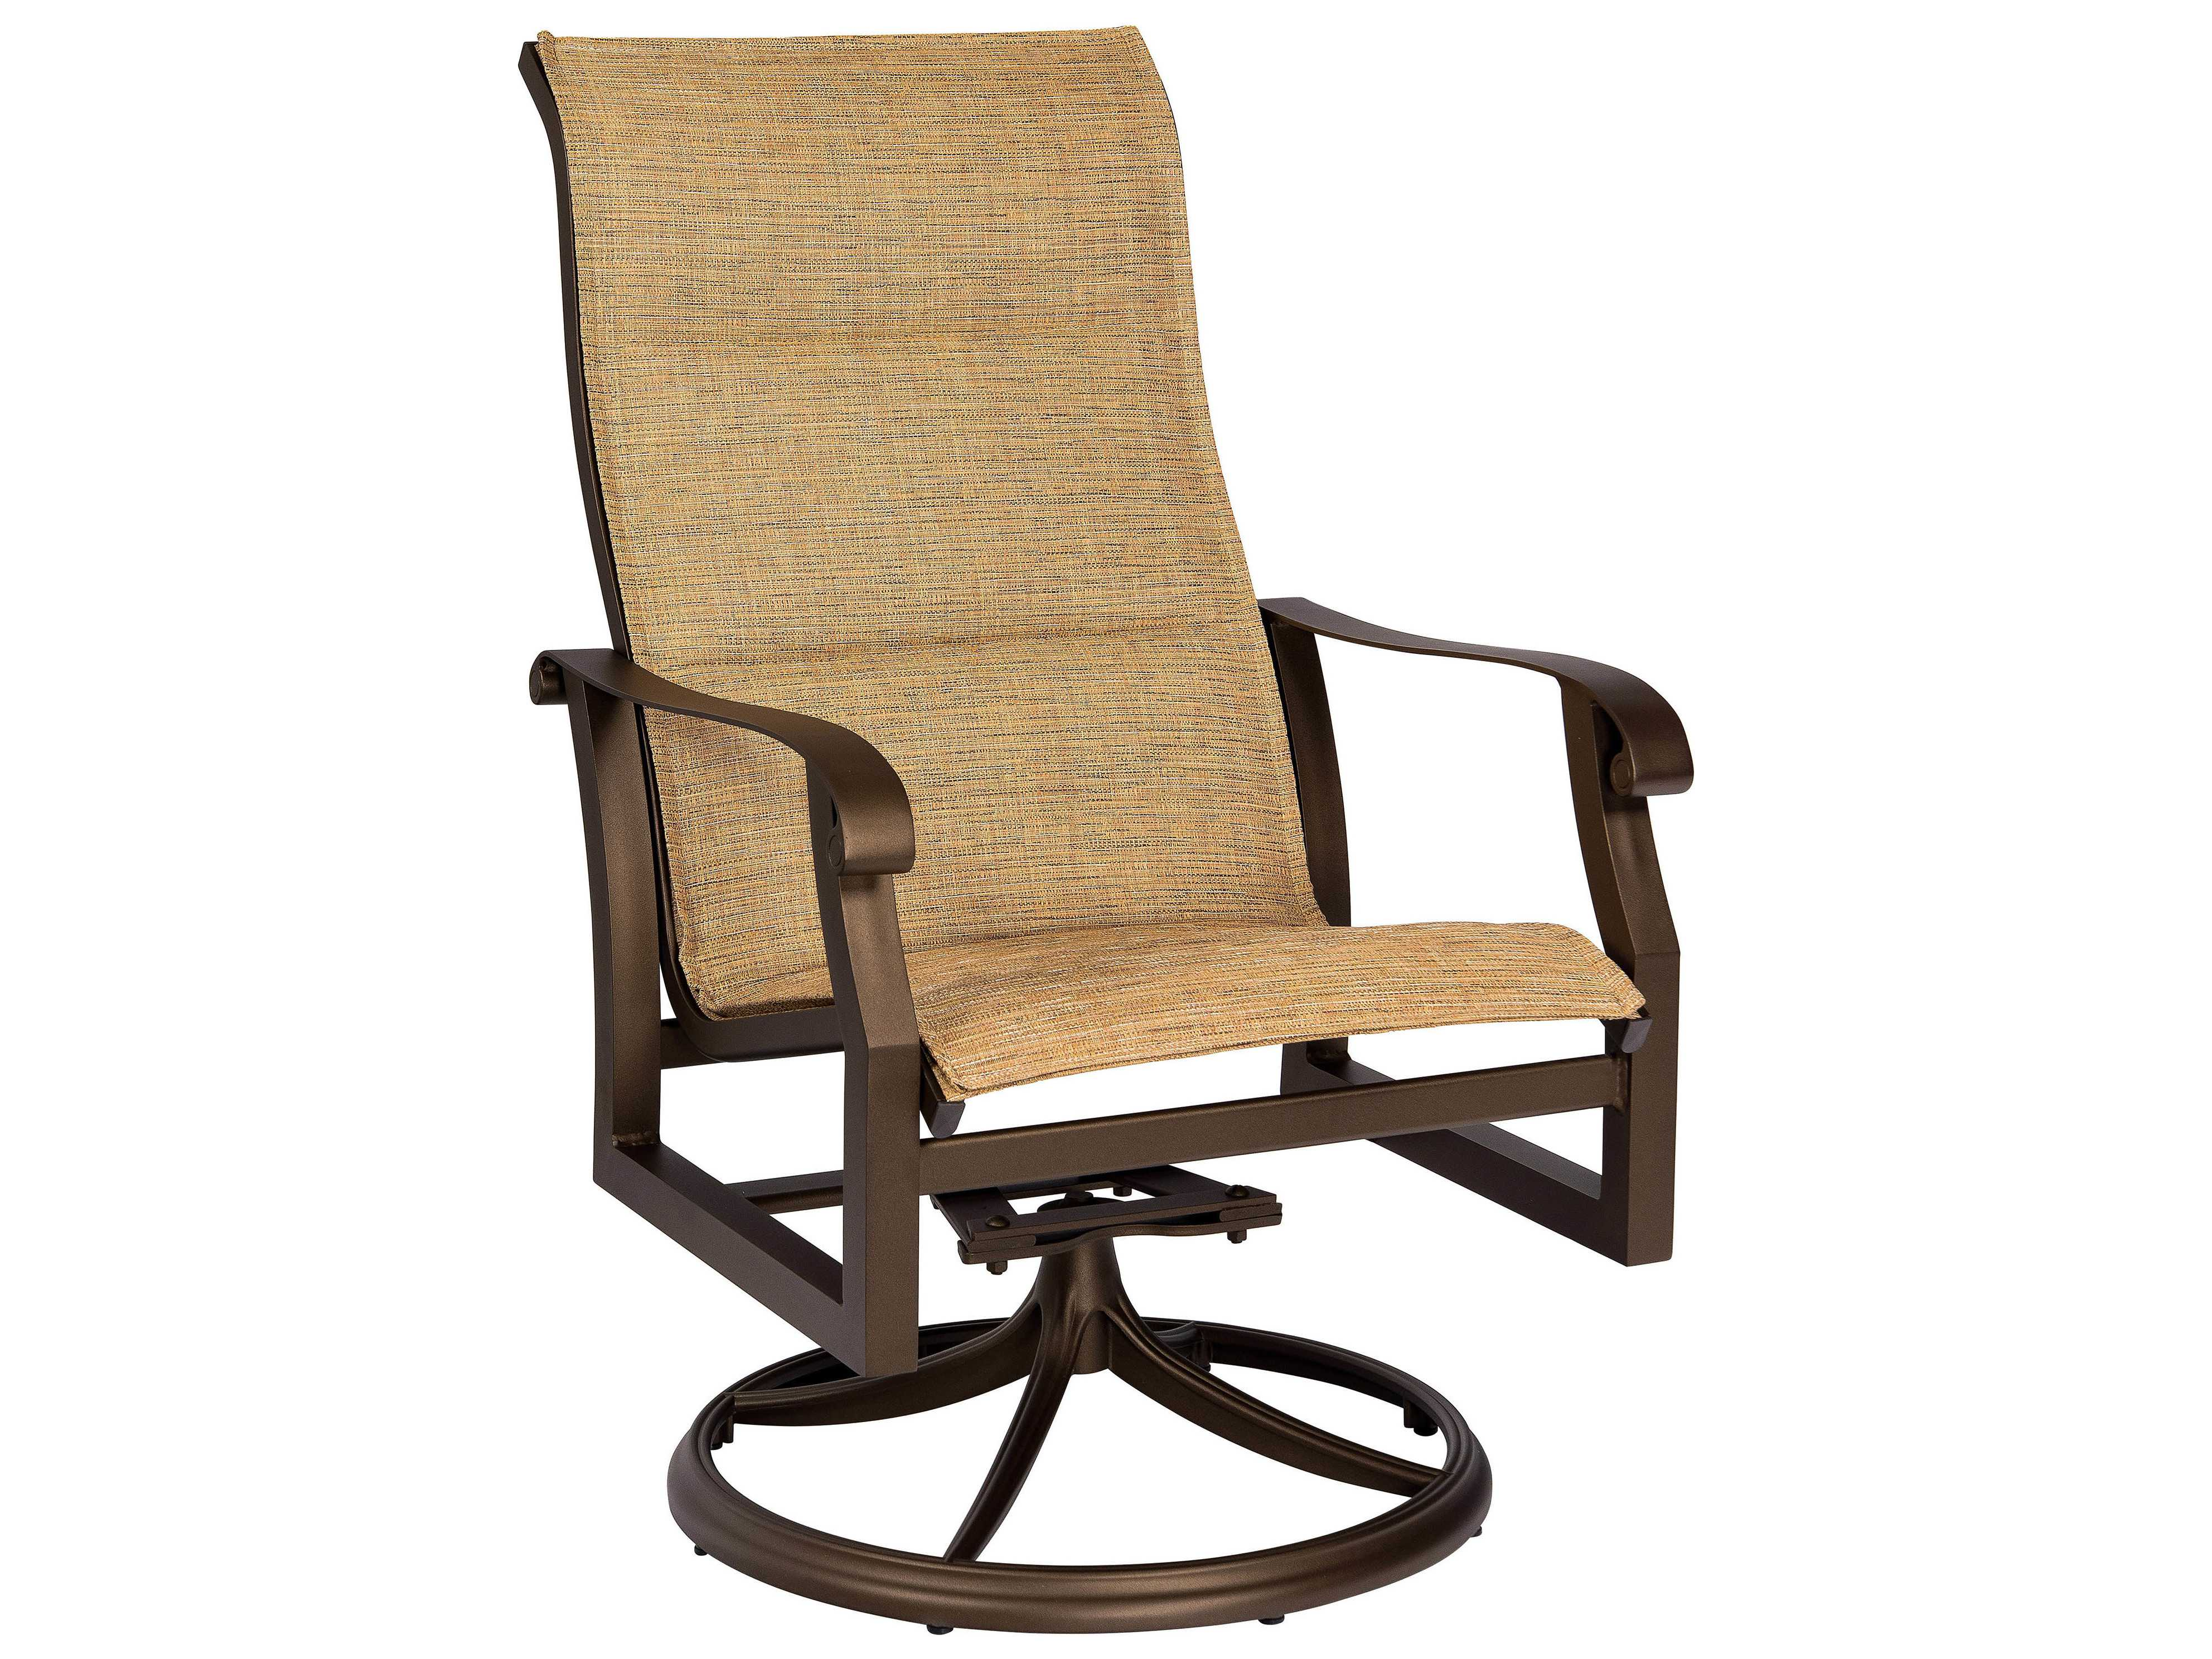 sling motion patio chairs gaming chair accessories woodard cortland padded aluminum high back swivel